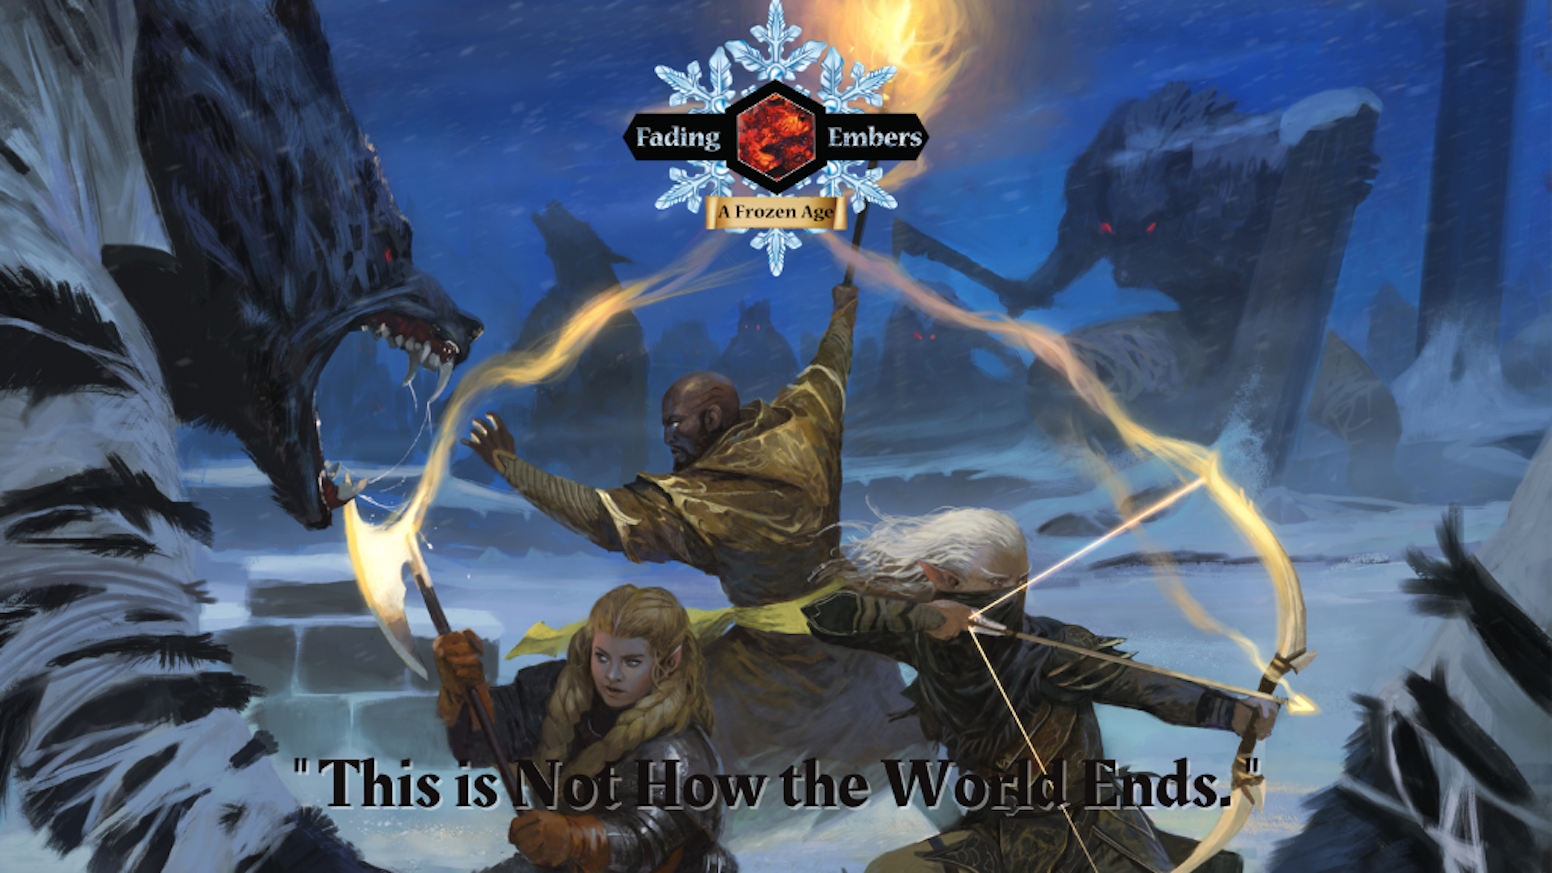 The Kickstarter Campaign may be over, but Pre-Orders continue!5e DnD Campaign Set for a world dying in Snow and Ice.